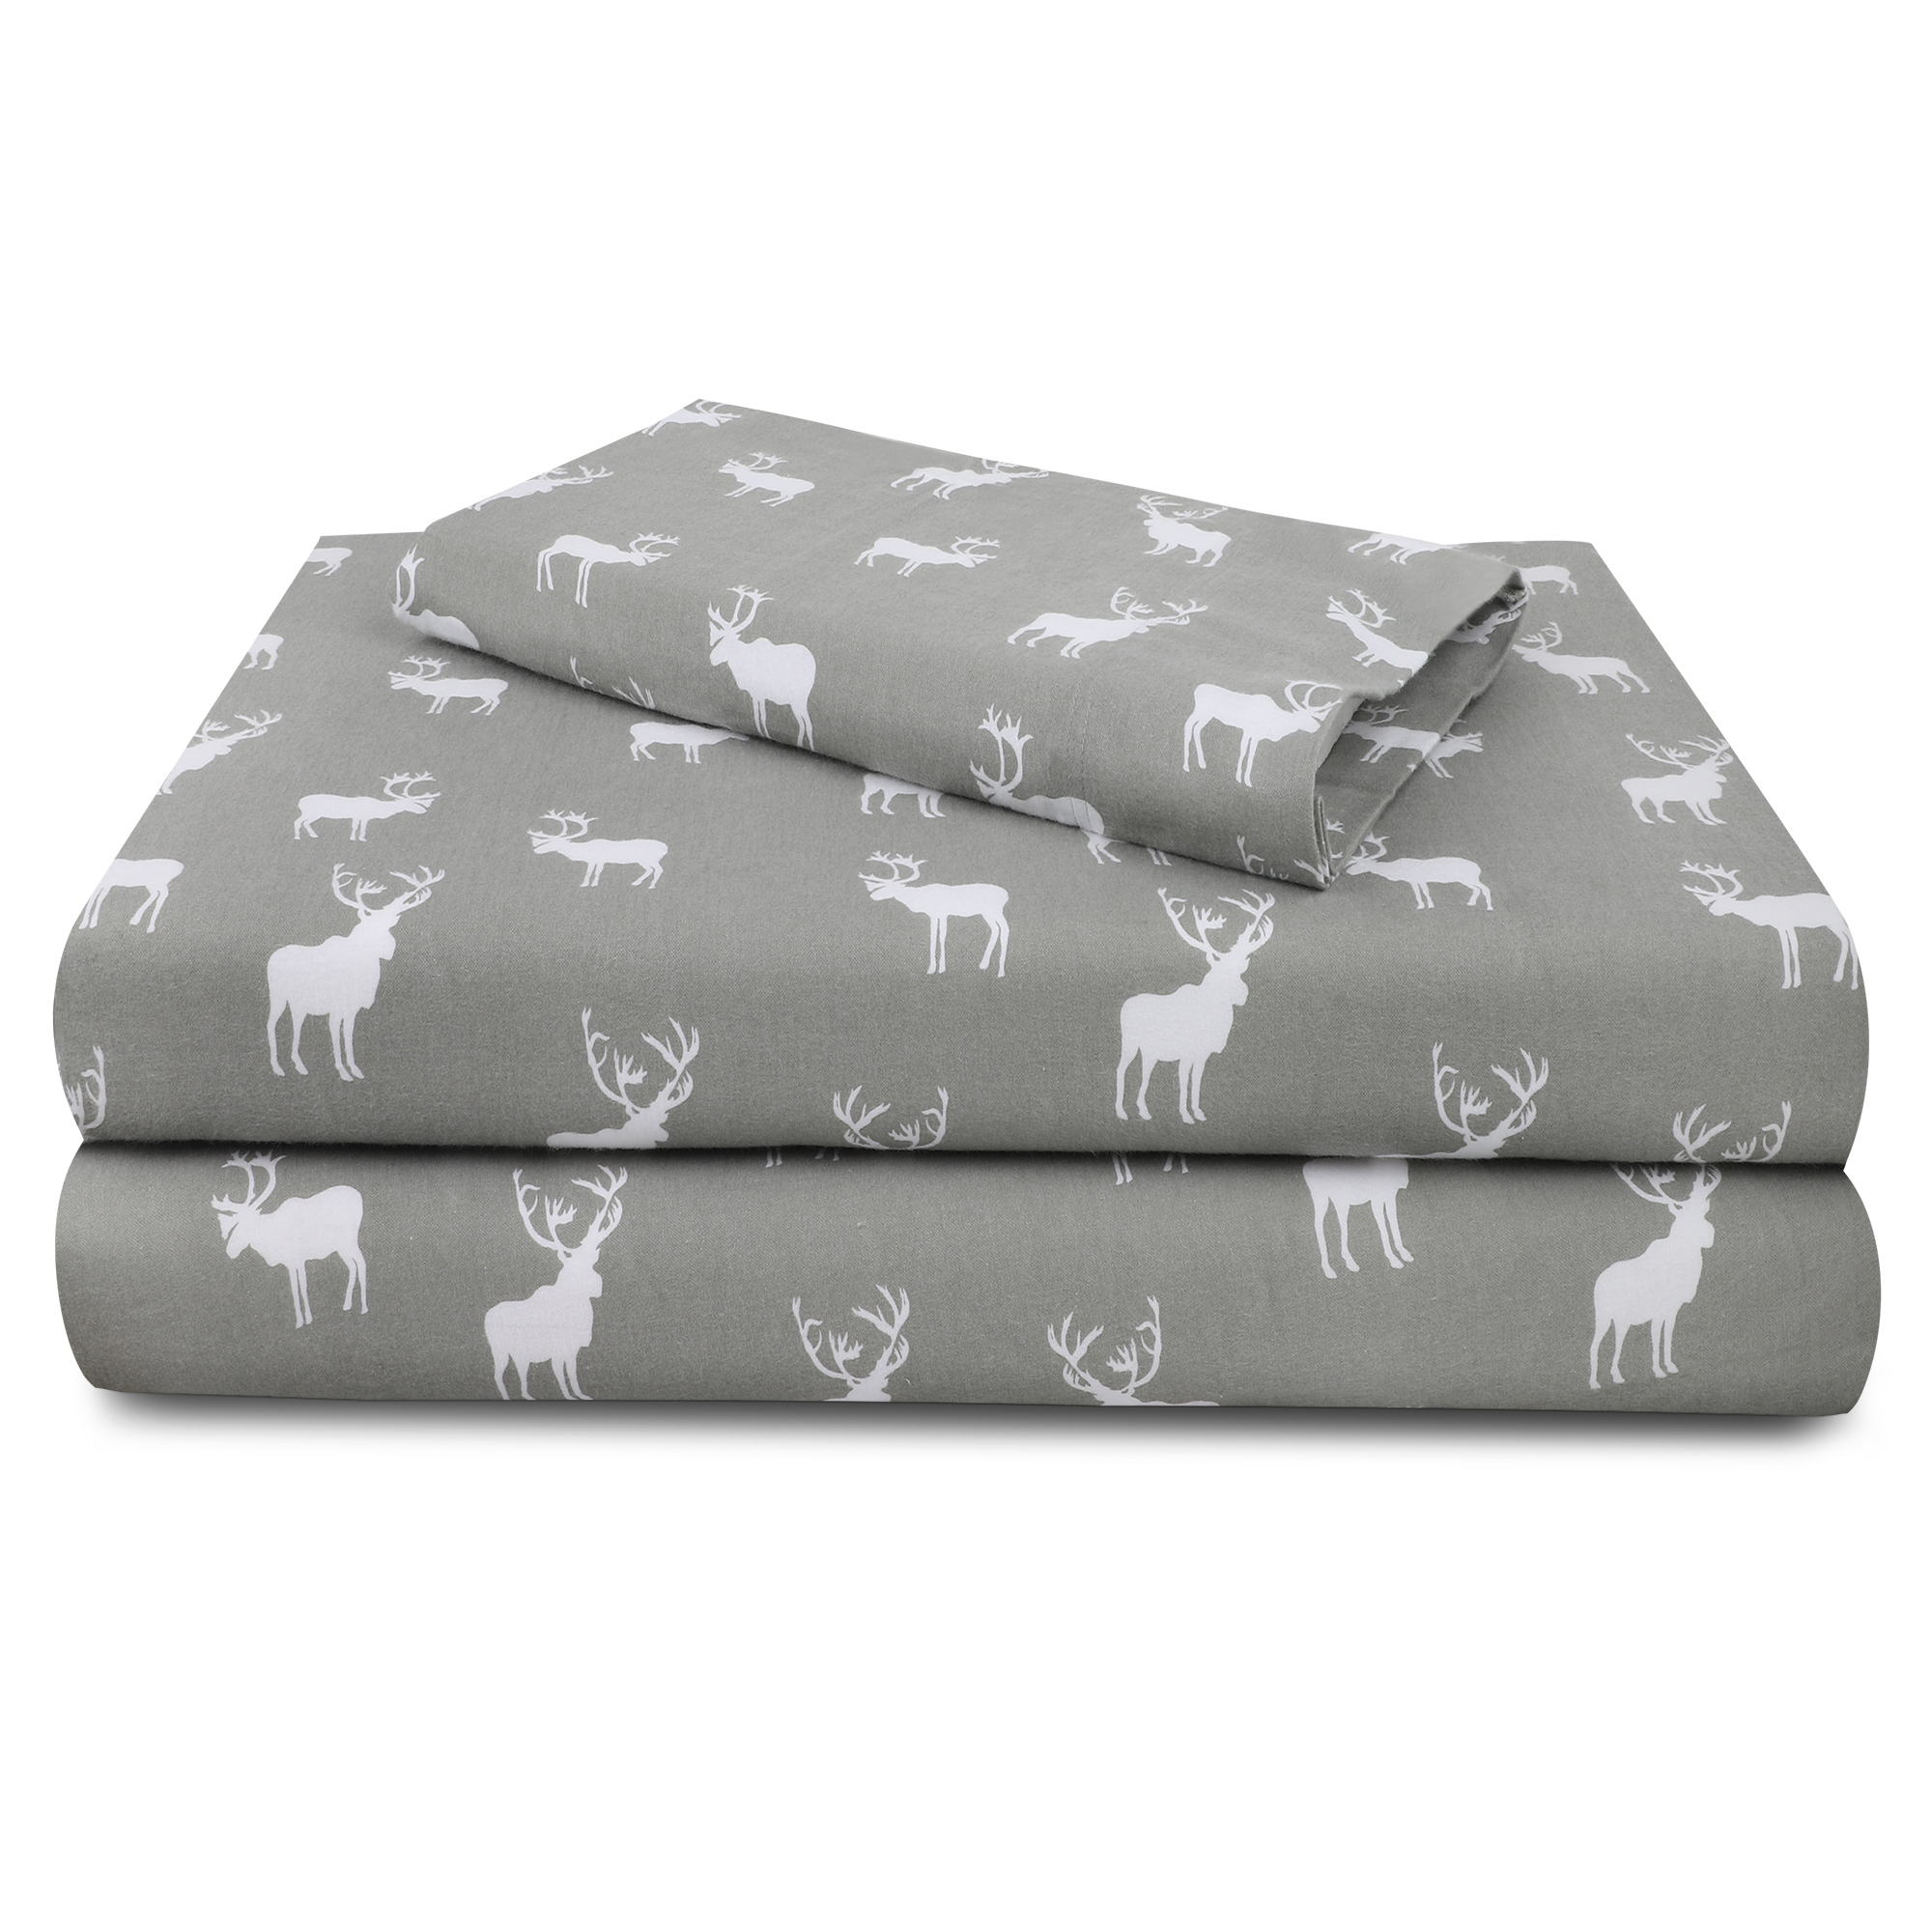 Cot Bed Cotton Flannelette Sheets Pack of 2